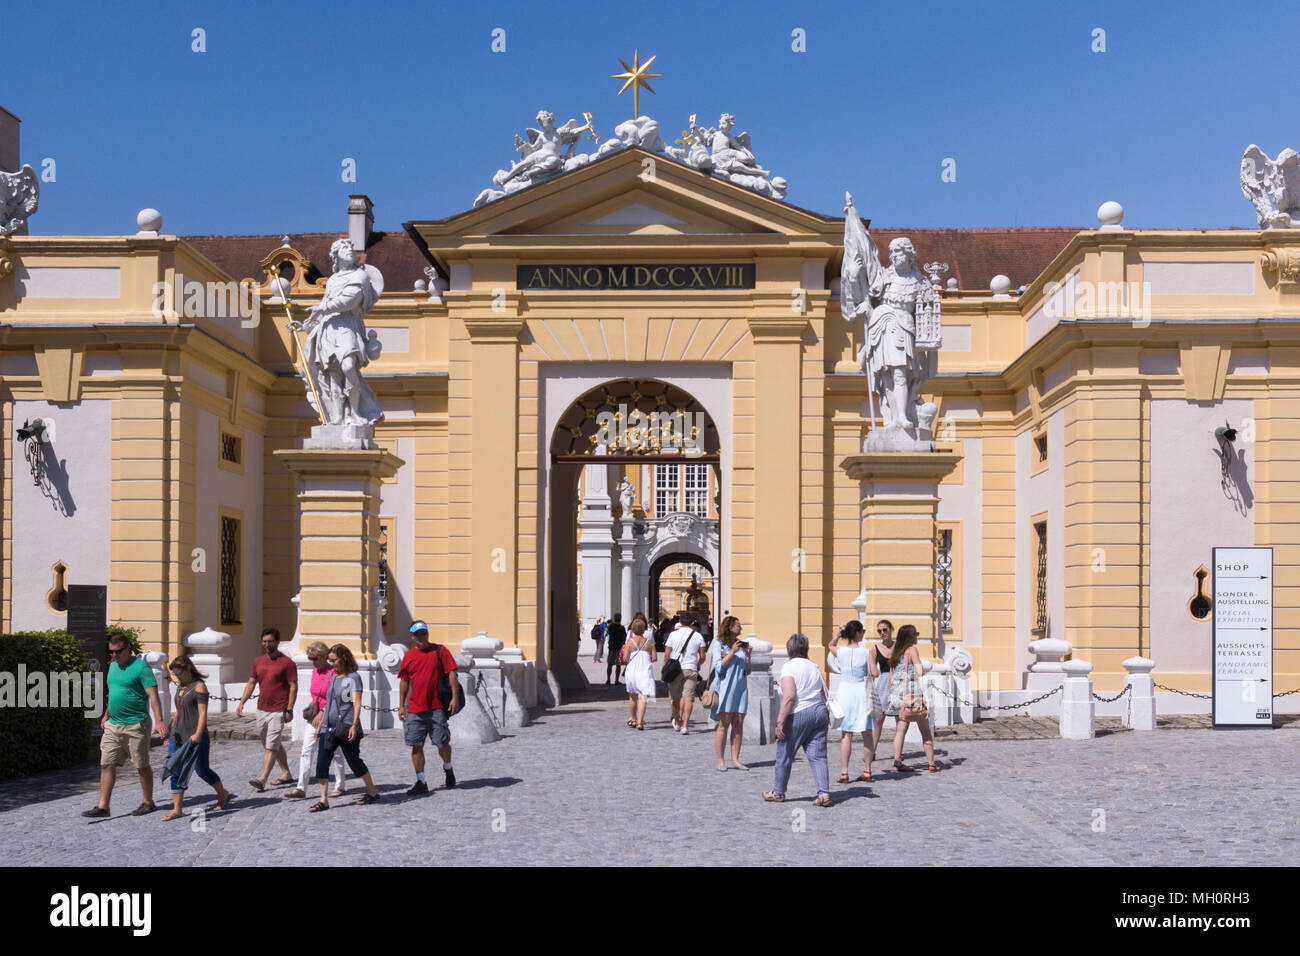 Visitors to Austria's Melk Abbey passing through the main gate. Its architecture is famous worldwide and part of UNESCO's world cultural heritage - Stock Image